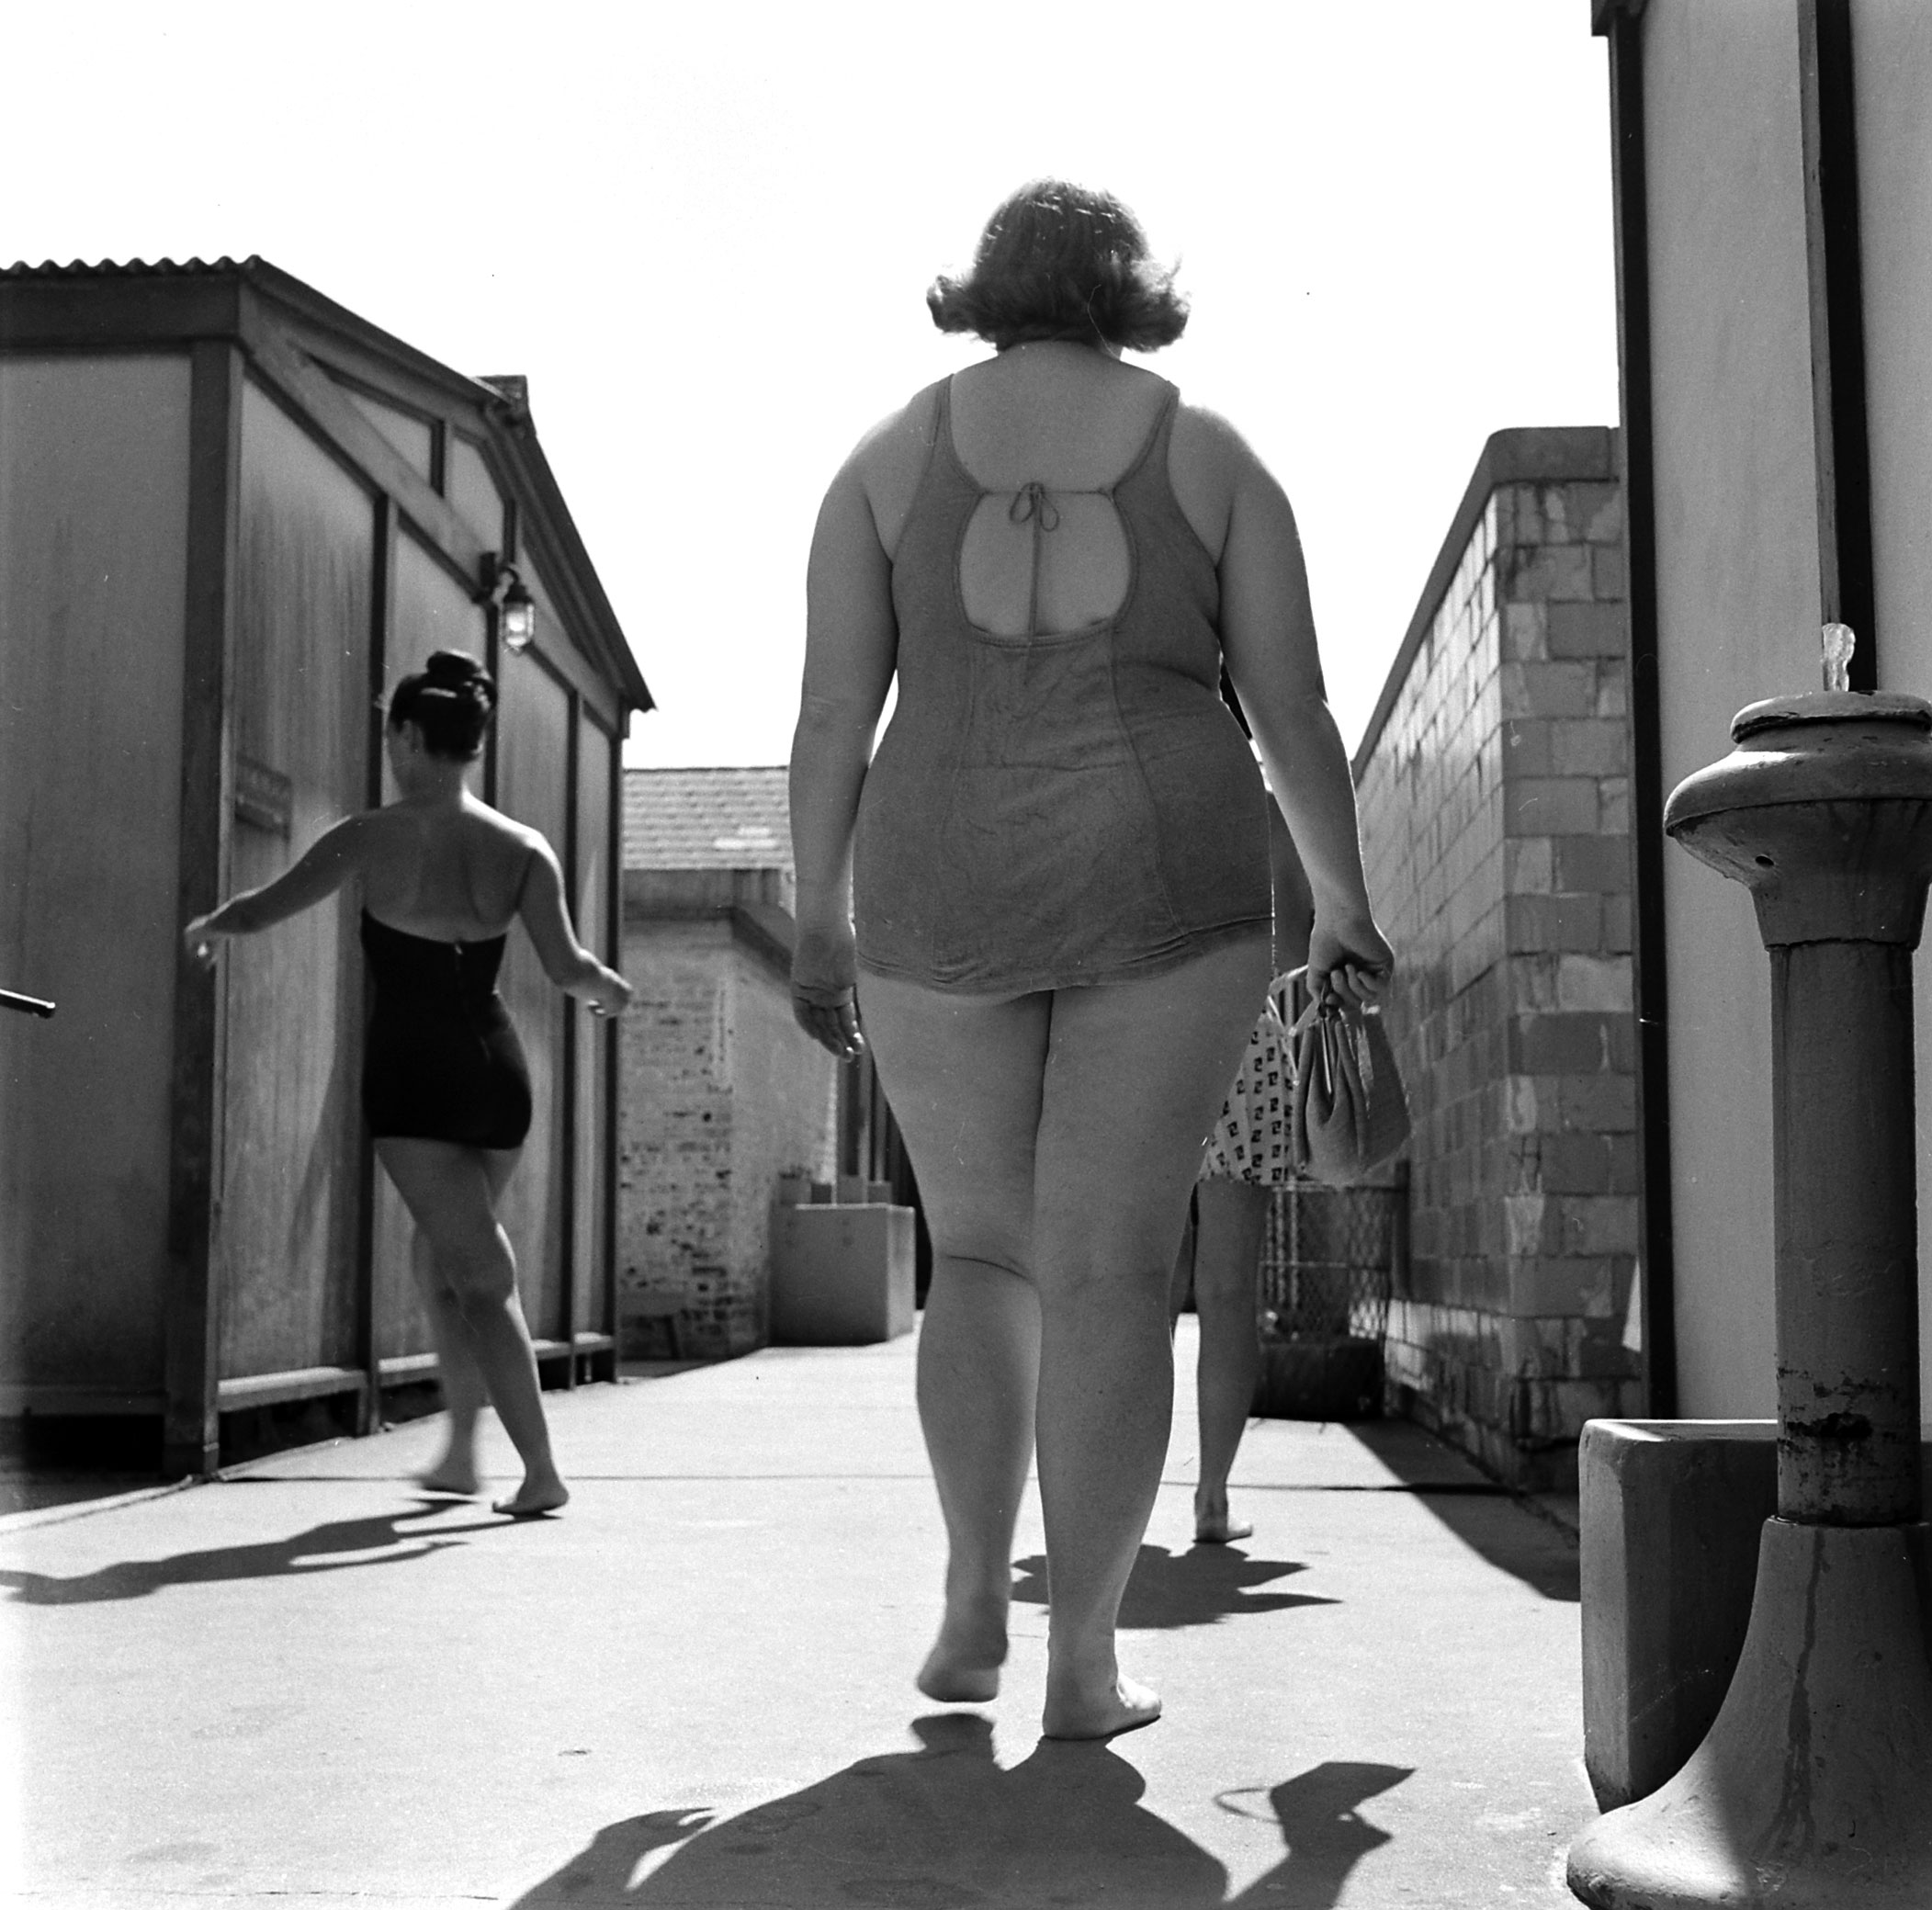 <b>Caption from LIFE.</b> Bulging at beach in 1949, 197-pound Dorothy [Bradley] self-consciously leaves locker room for swim. She covered up embarrassment by being jolly and gregarious.